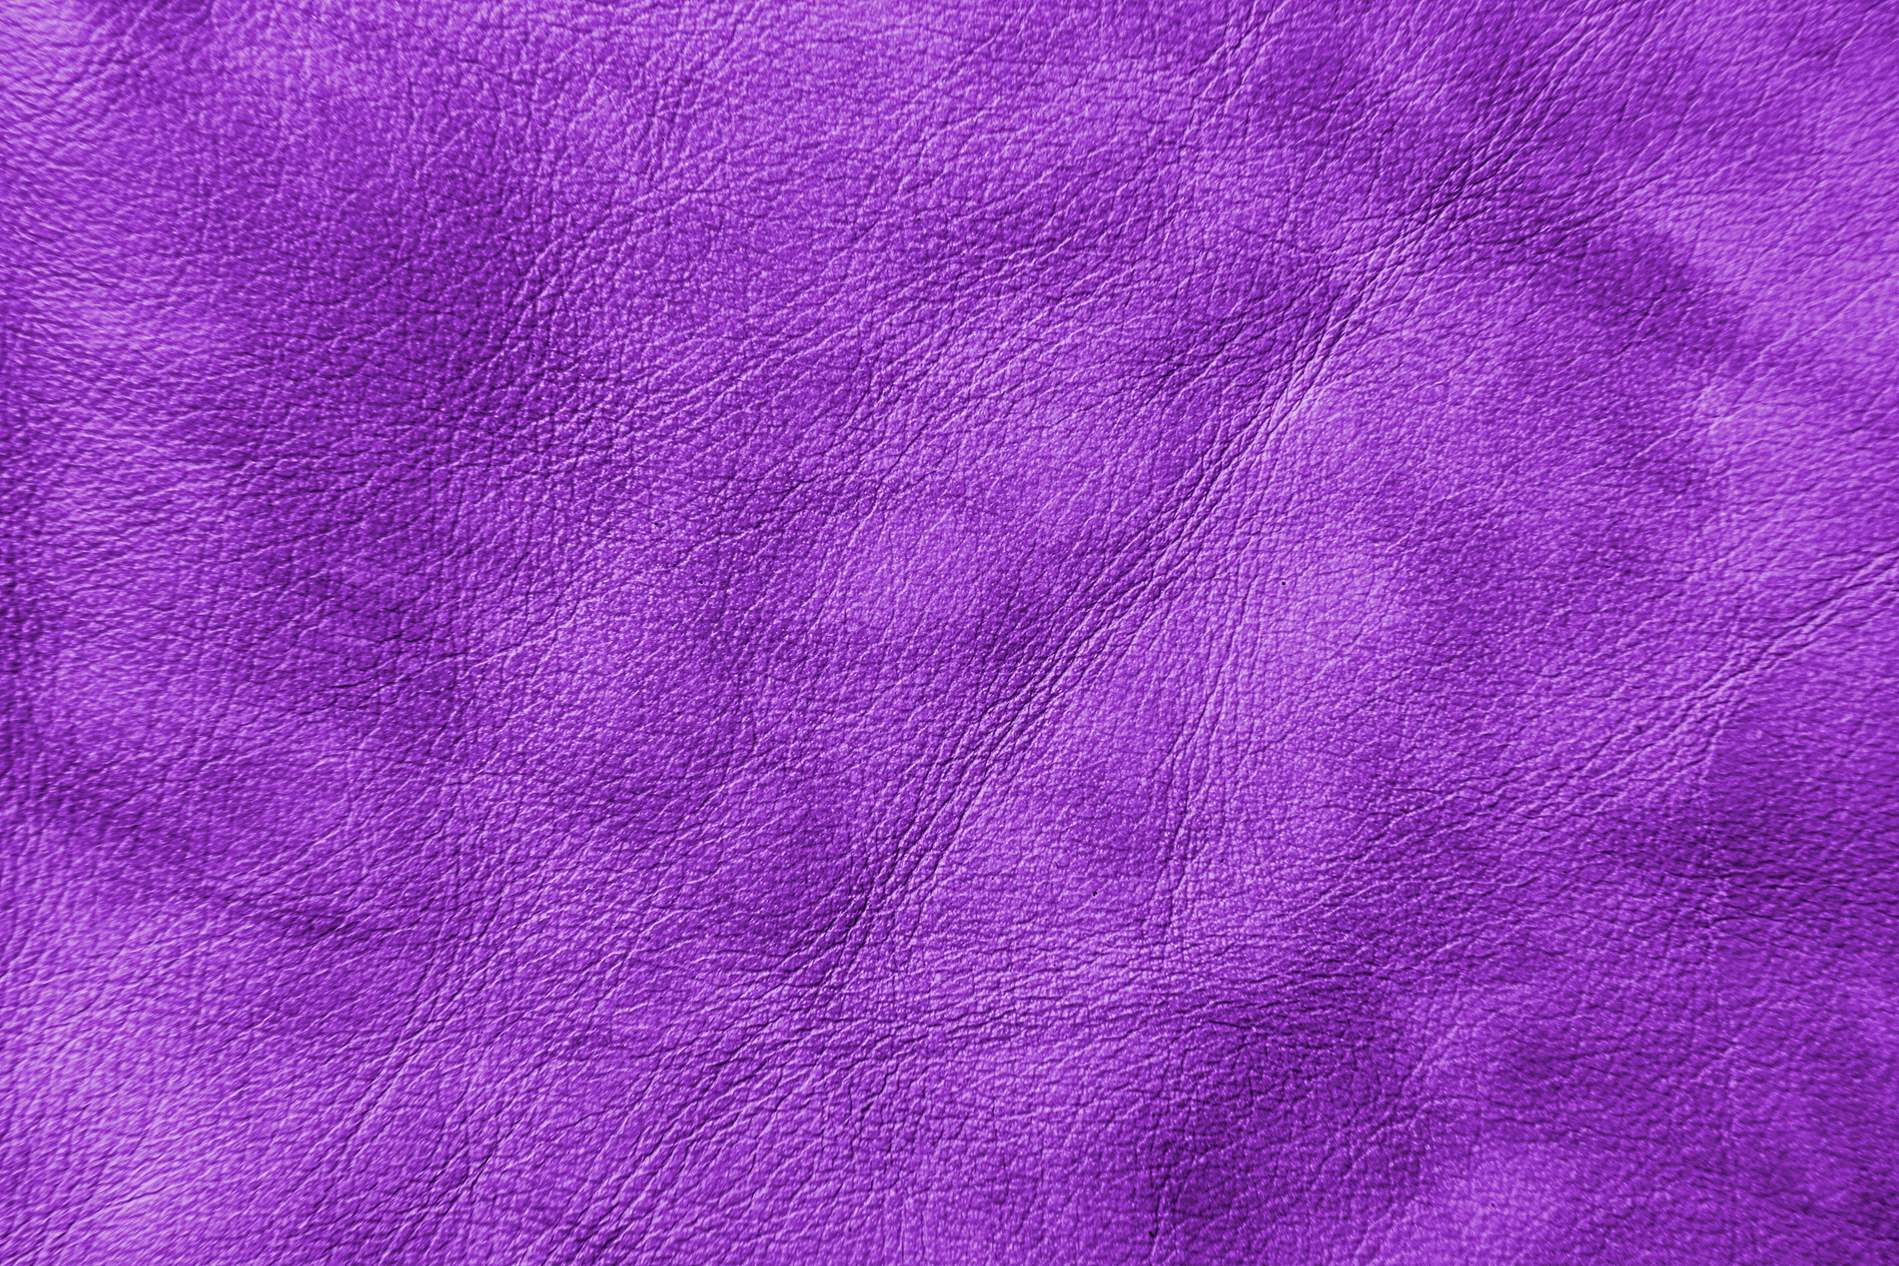 purple vintage leather texture background photohdx